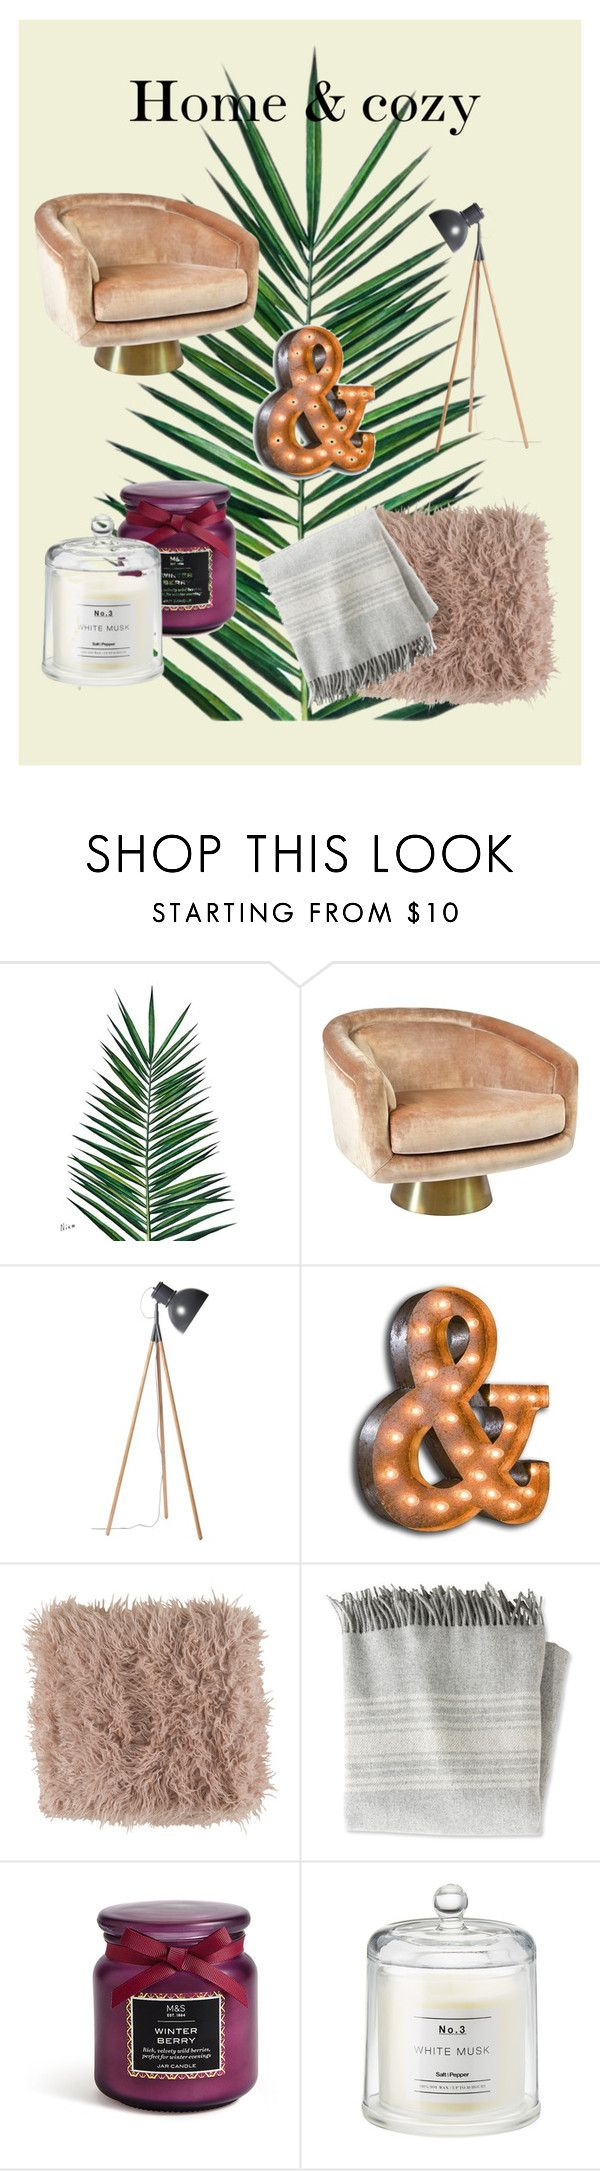 """""""Home & cozy"""" by clara-schmidt on Polyvore featuring interior, interiors, interior design, home, home decor, interior decorating, Nika, Jonathan Adler, Vintage Marquee Lights and Surya"""